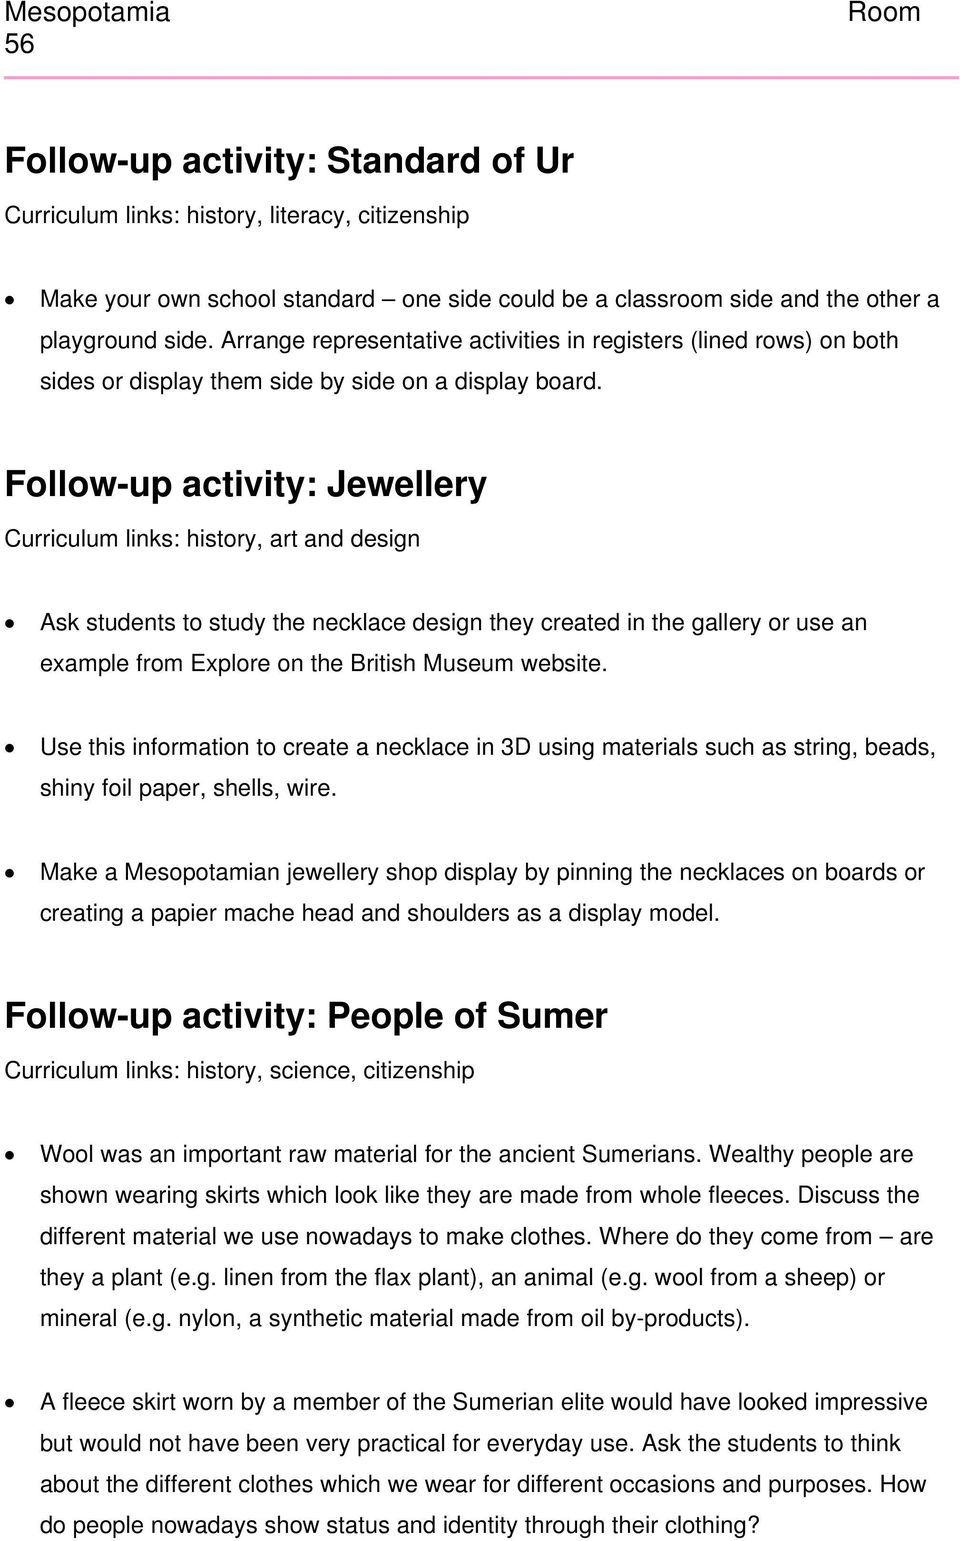 Follow-up activity: Jewellery Curriculum links: history, art and design Ask students to study the necklace design they created in the gallery or use an example from Explore on the British Museum